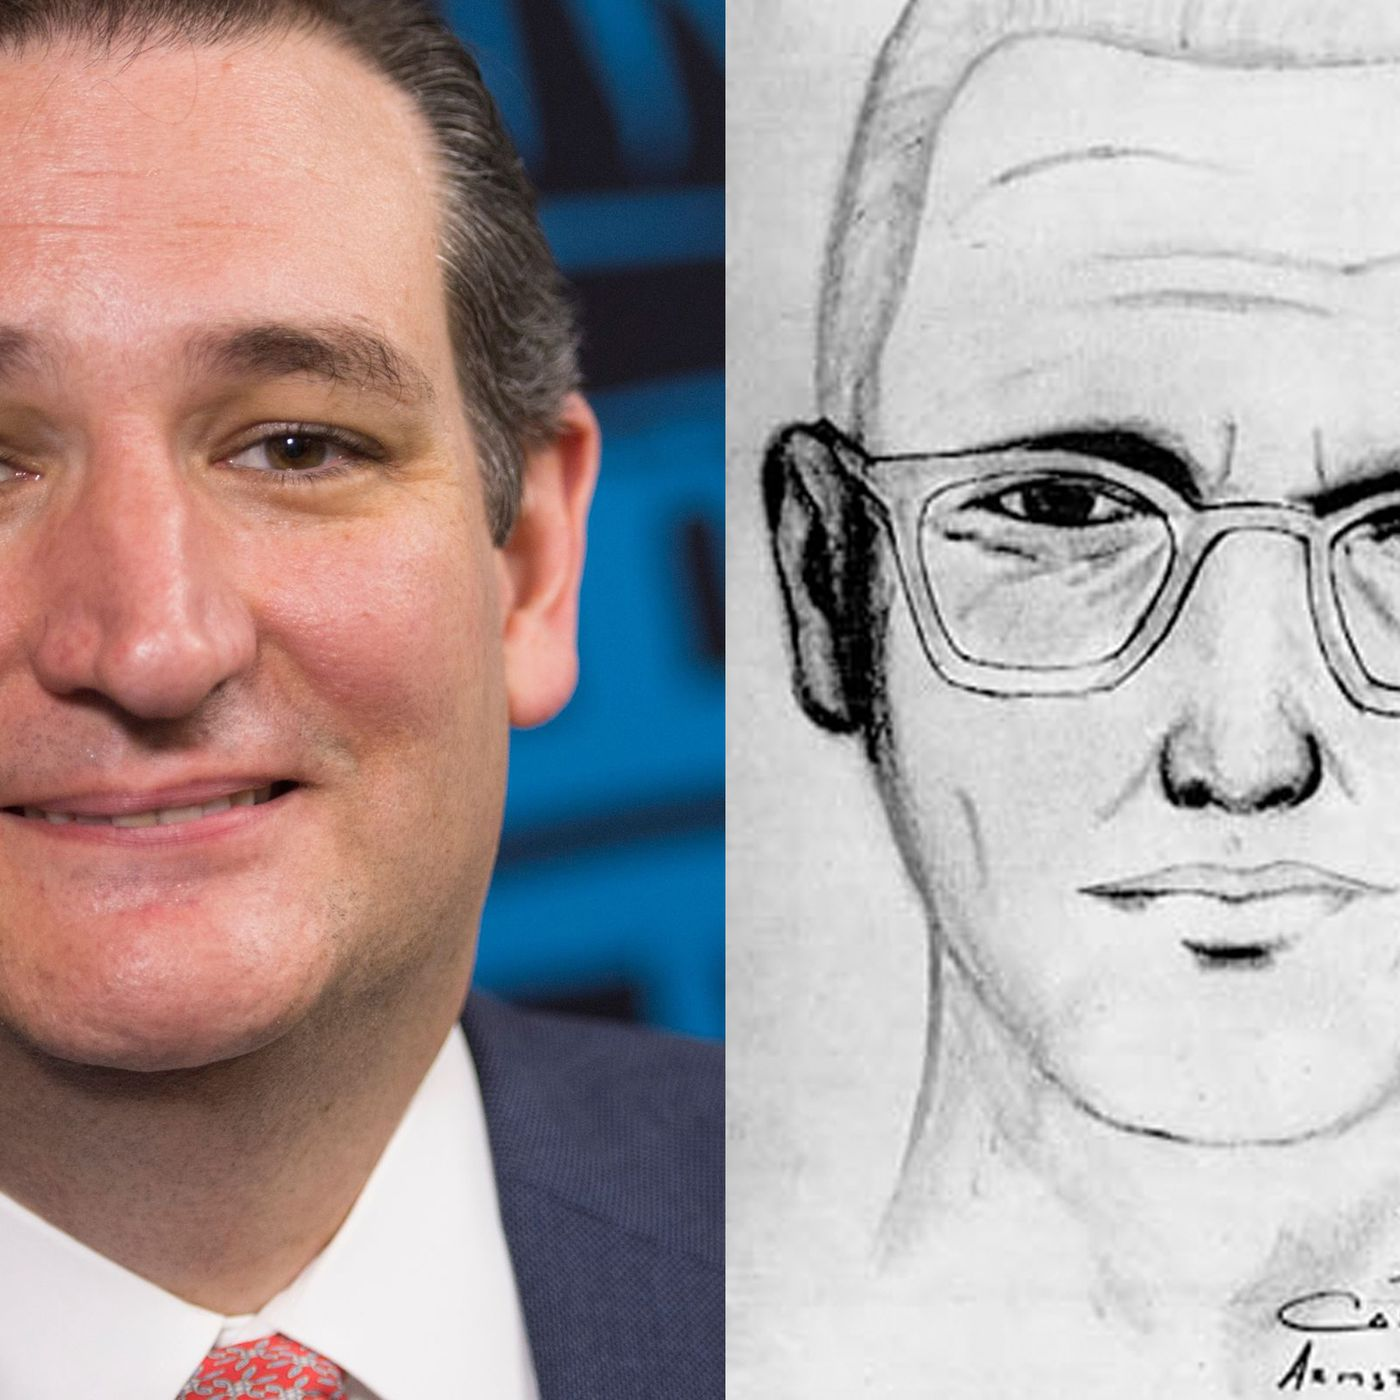 Who called Ted Cruz the Zodiac Killer, why, and is he? - The